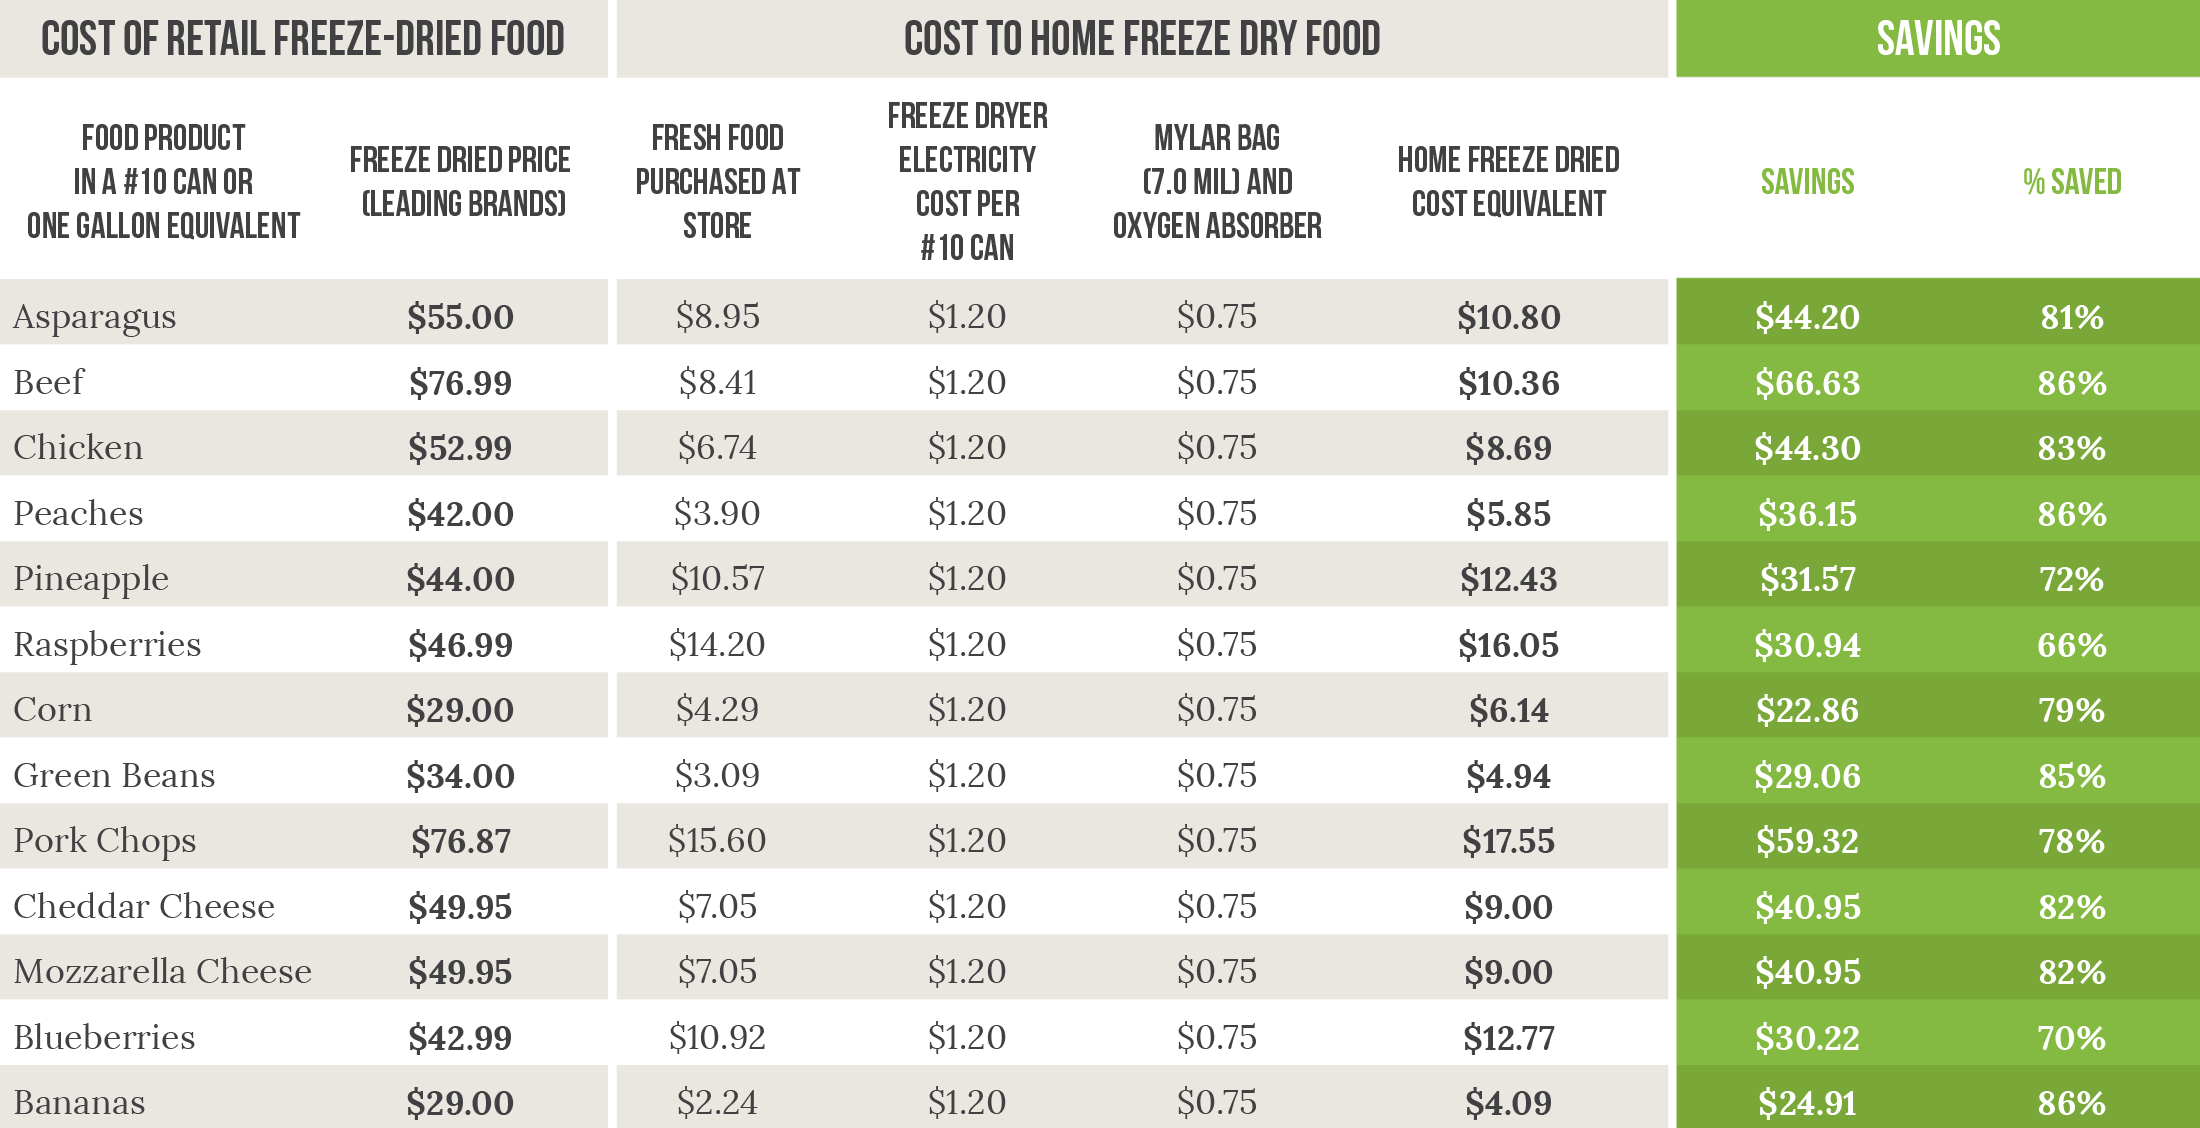 Comparison table: retail freeze-dried food versus home freeze-dried food. Open the link to download a PDF.